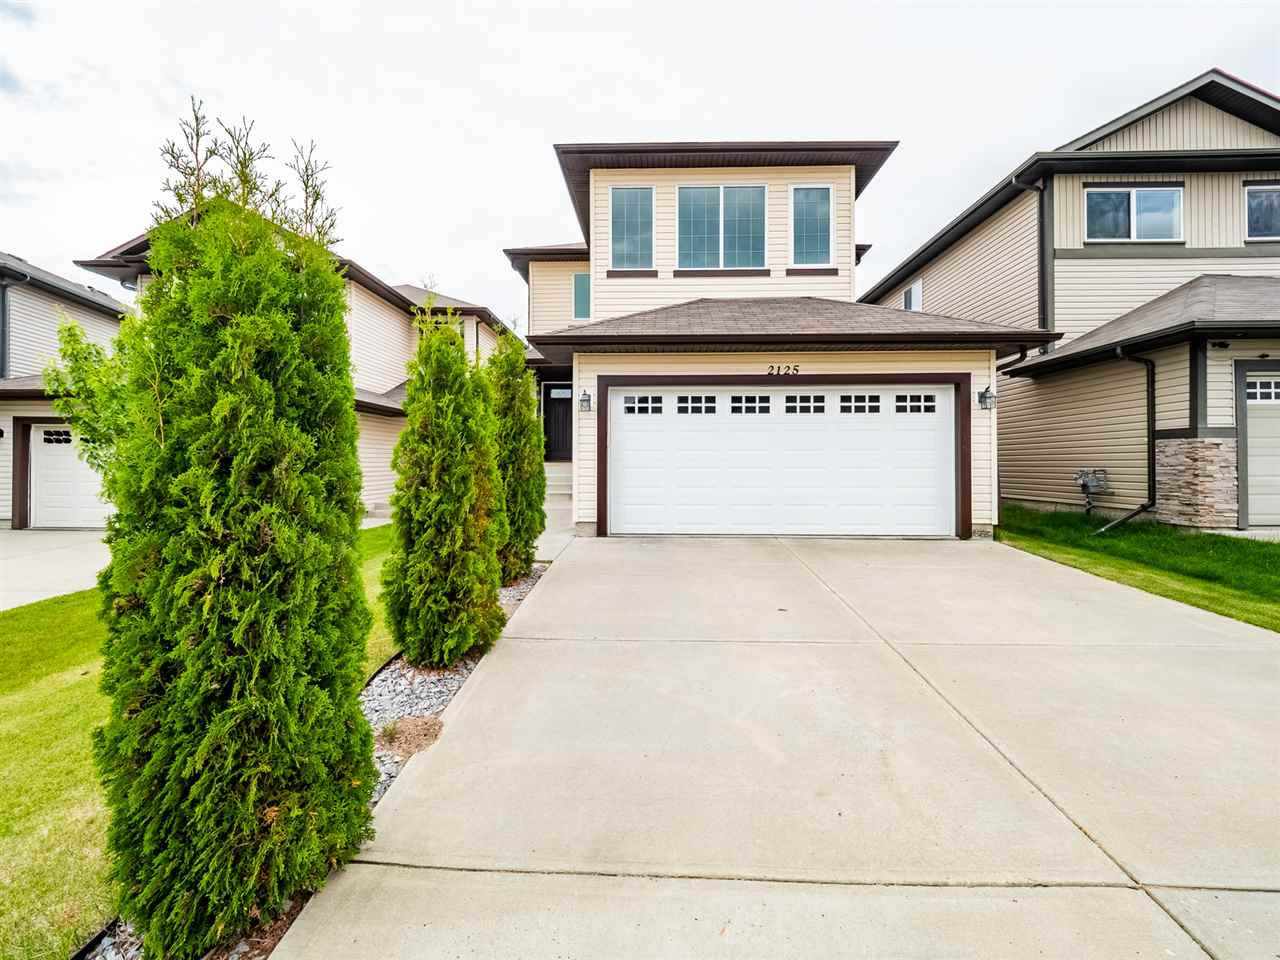 Main Photo: 2125 32A Street in Edmonton: Zone 30 House for sale : MLS®# E4205458